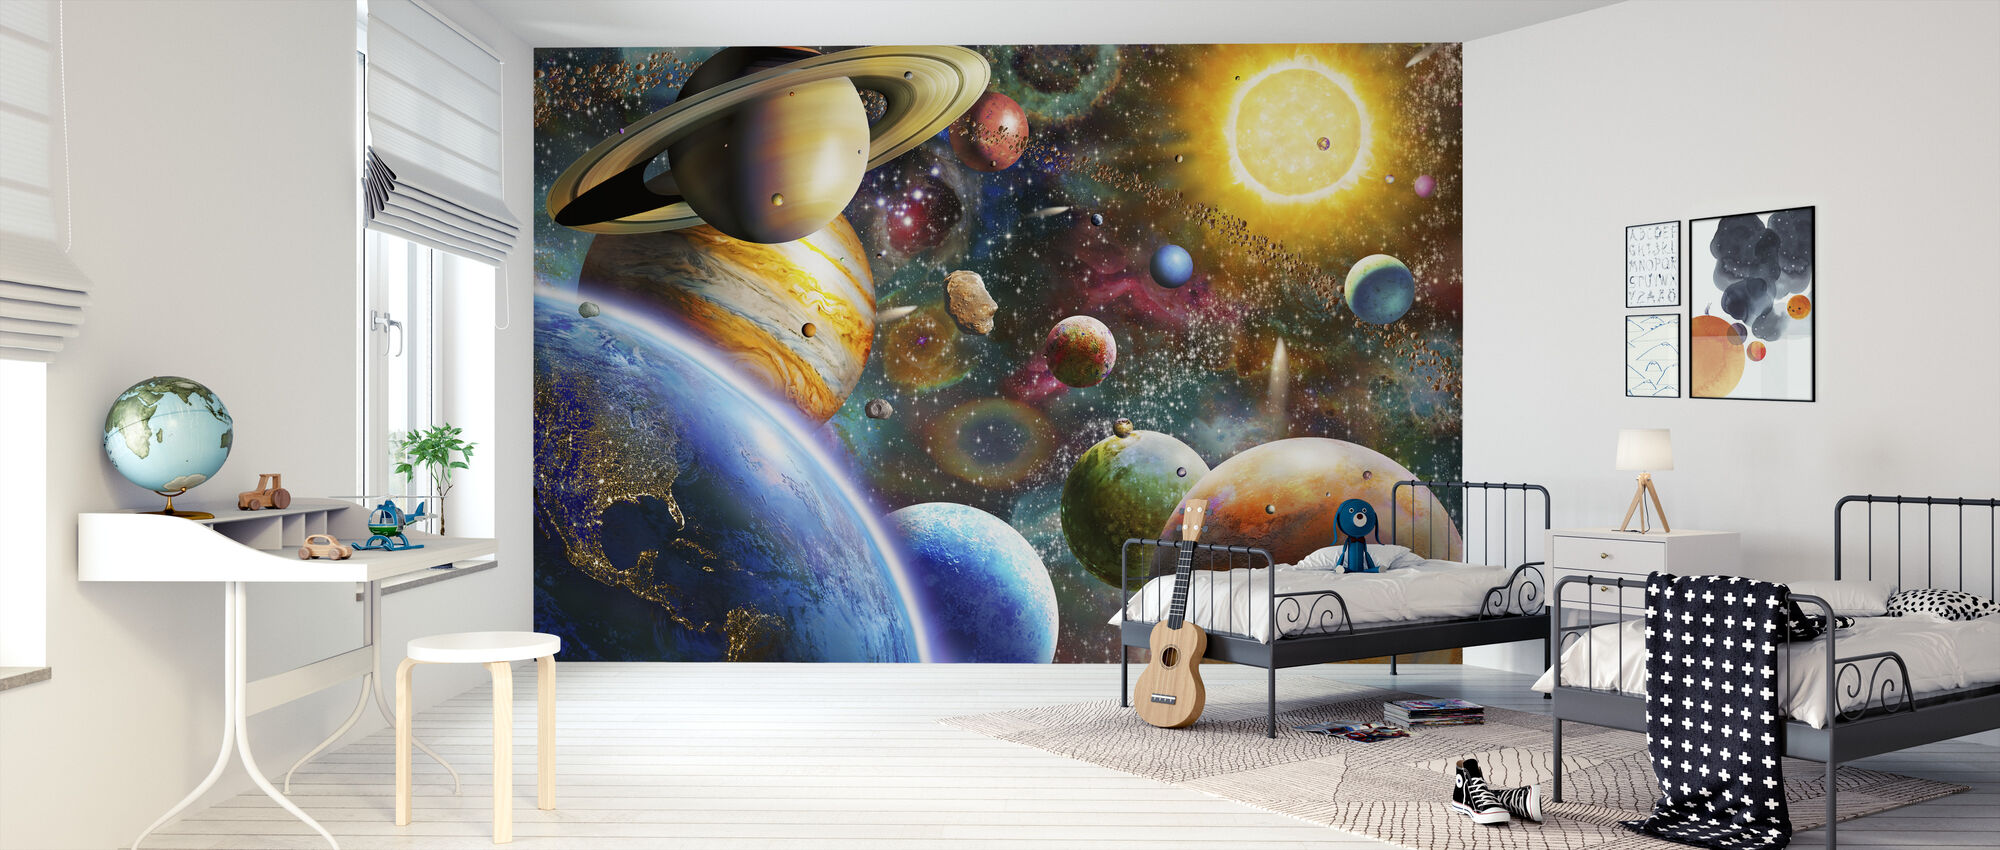 Planets in Space - Wallpaper - Kids Room